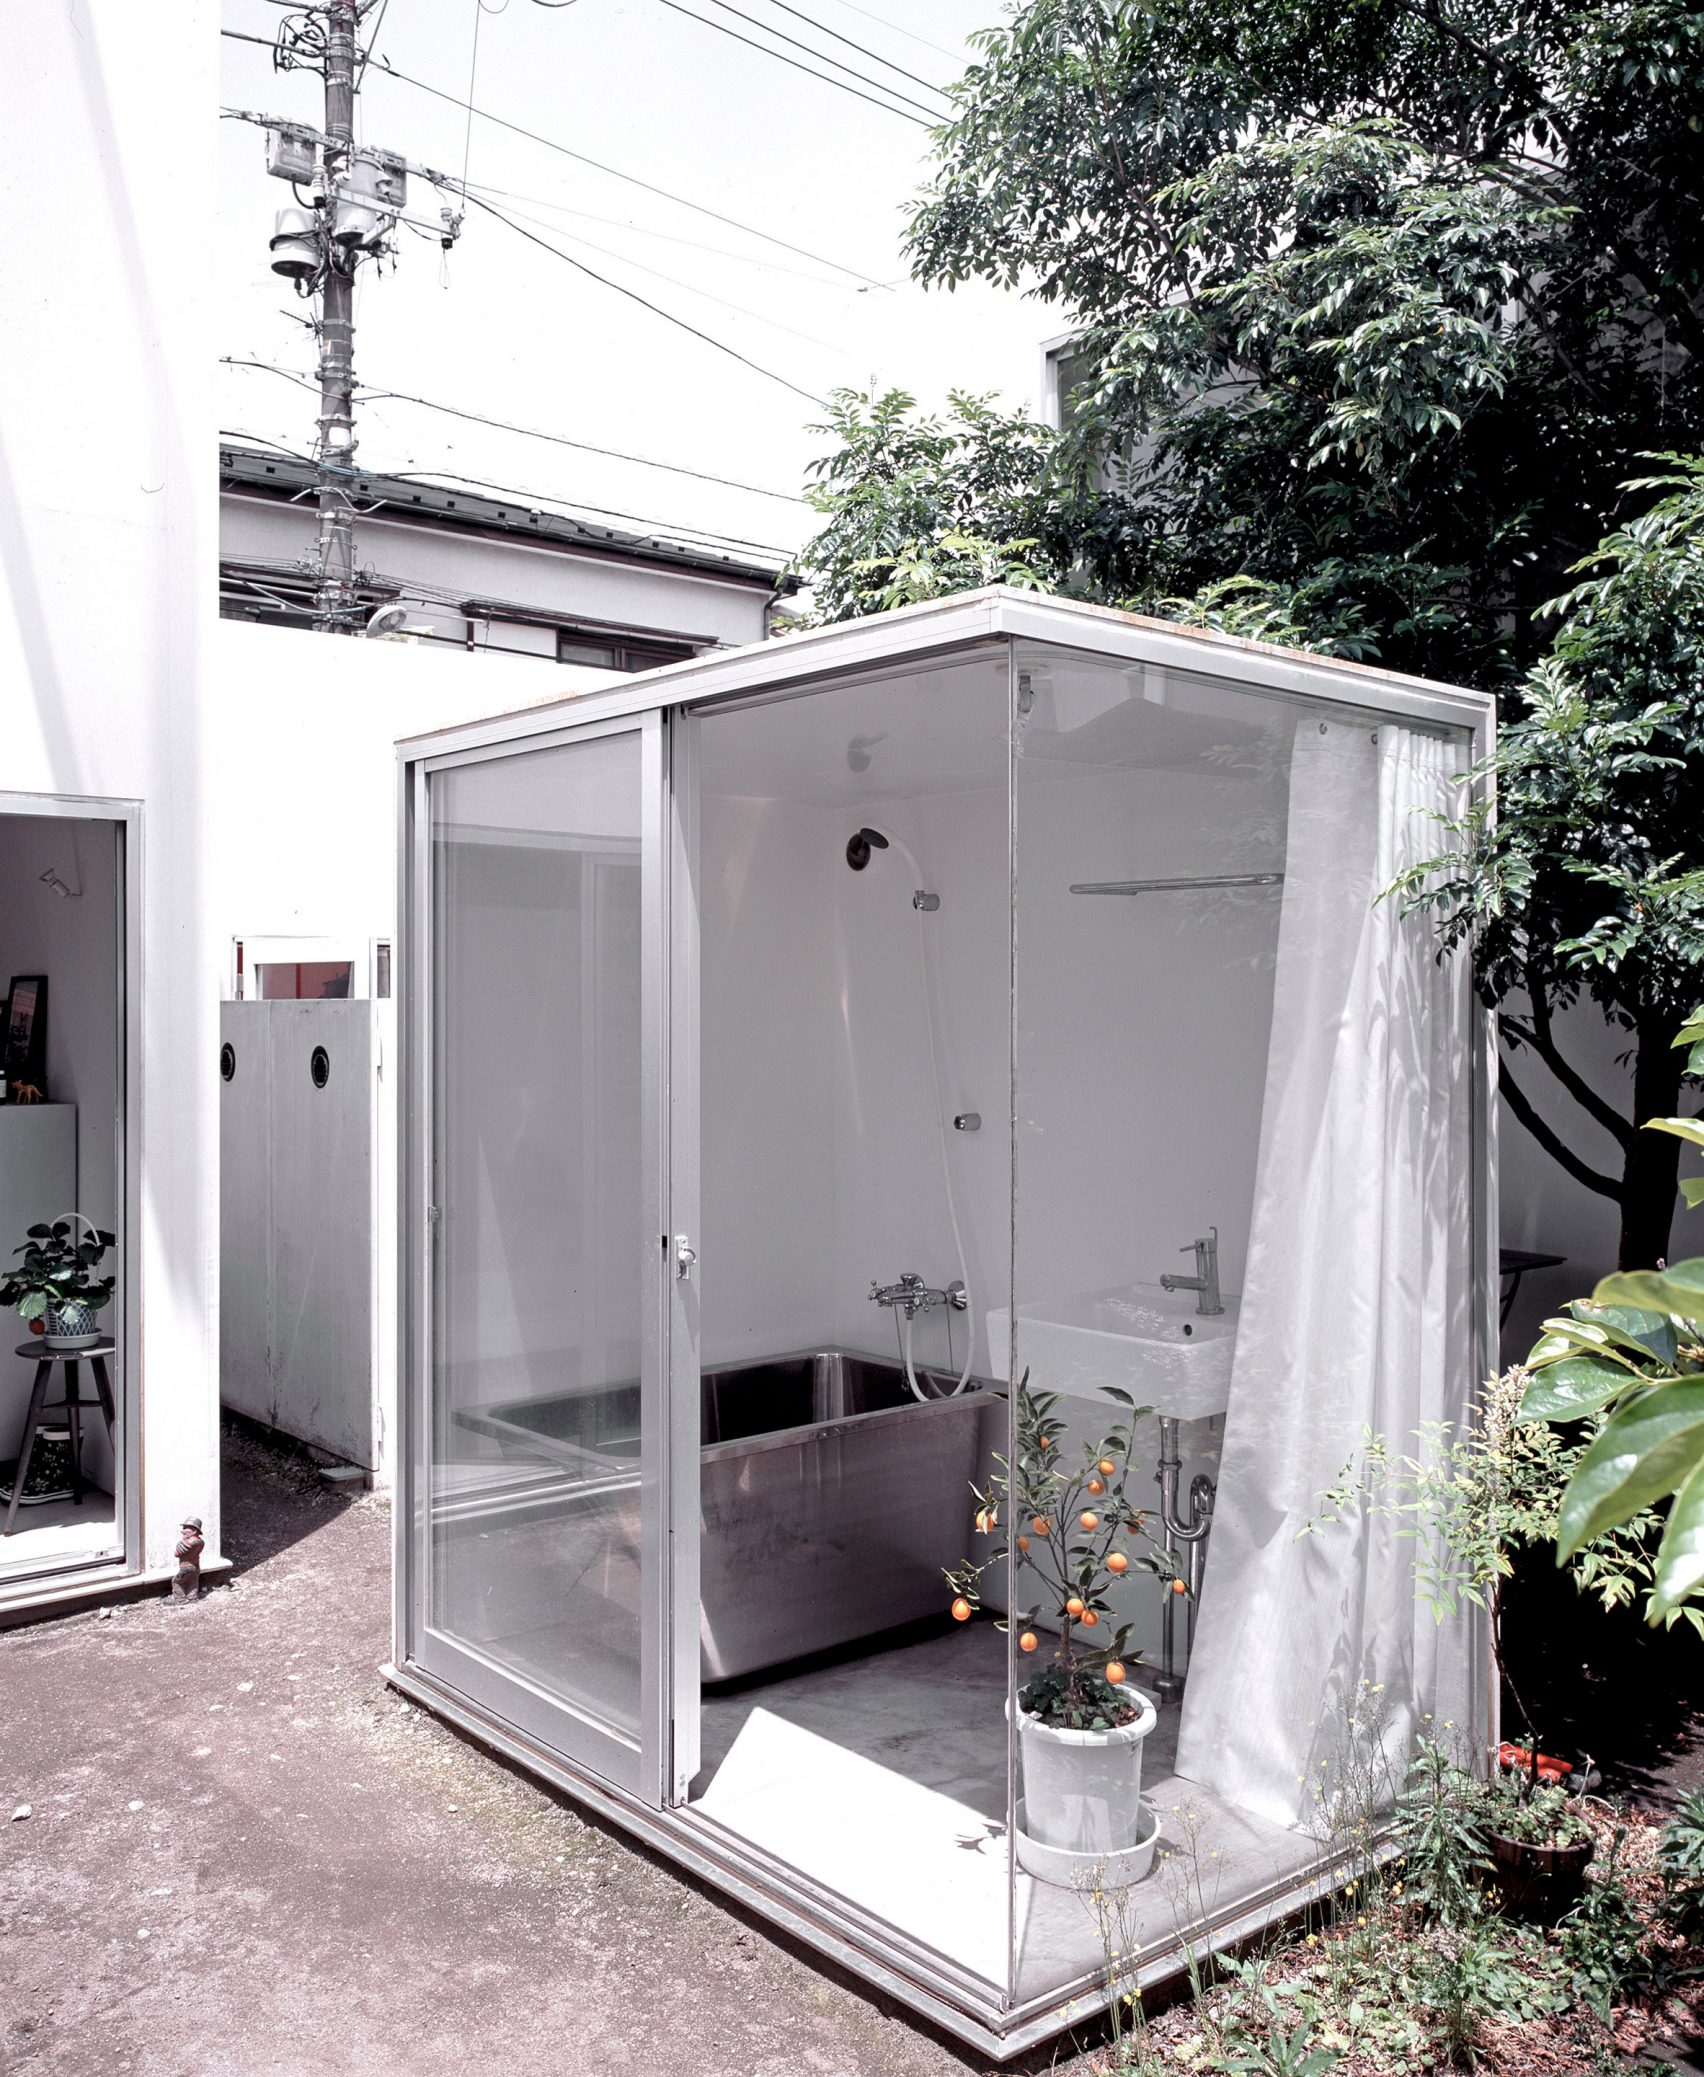 moriyama-house-photos-edmund-sumner-architecture-photography-residential-japan_dezeen_2364_col_14-1704x2077